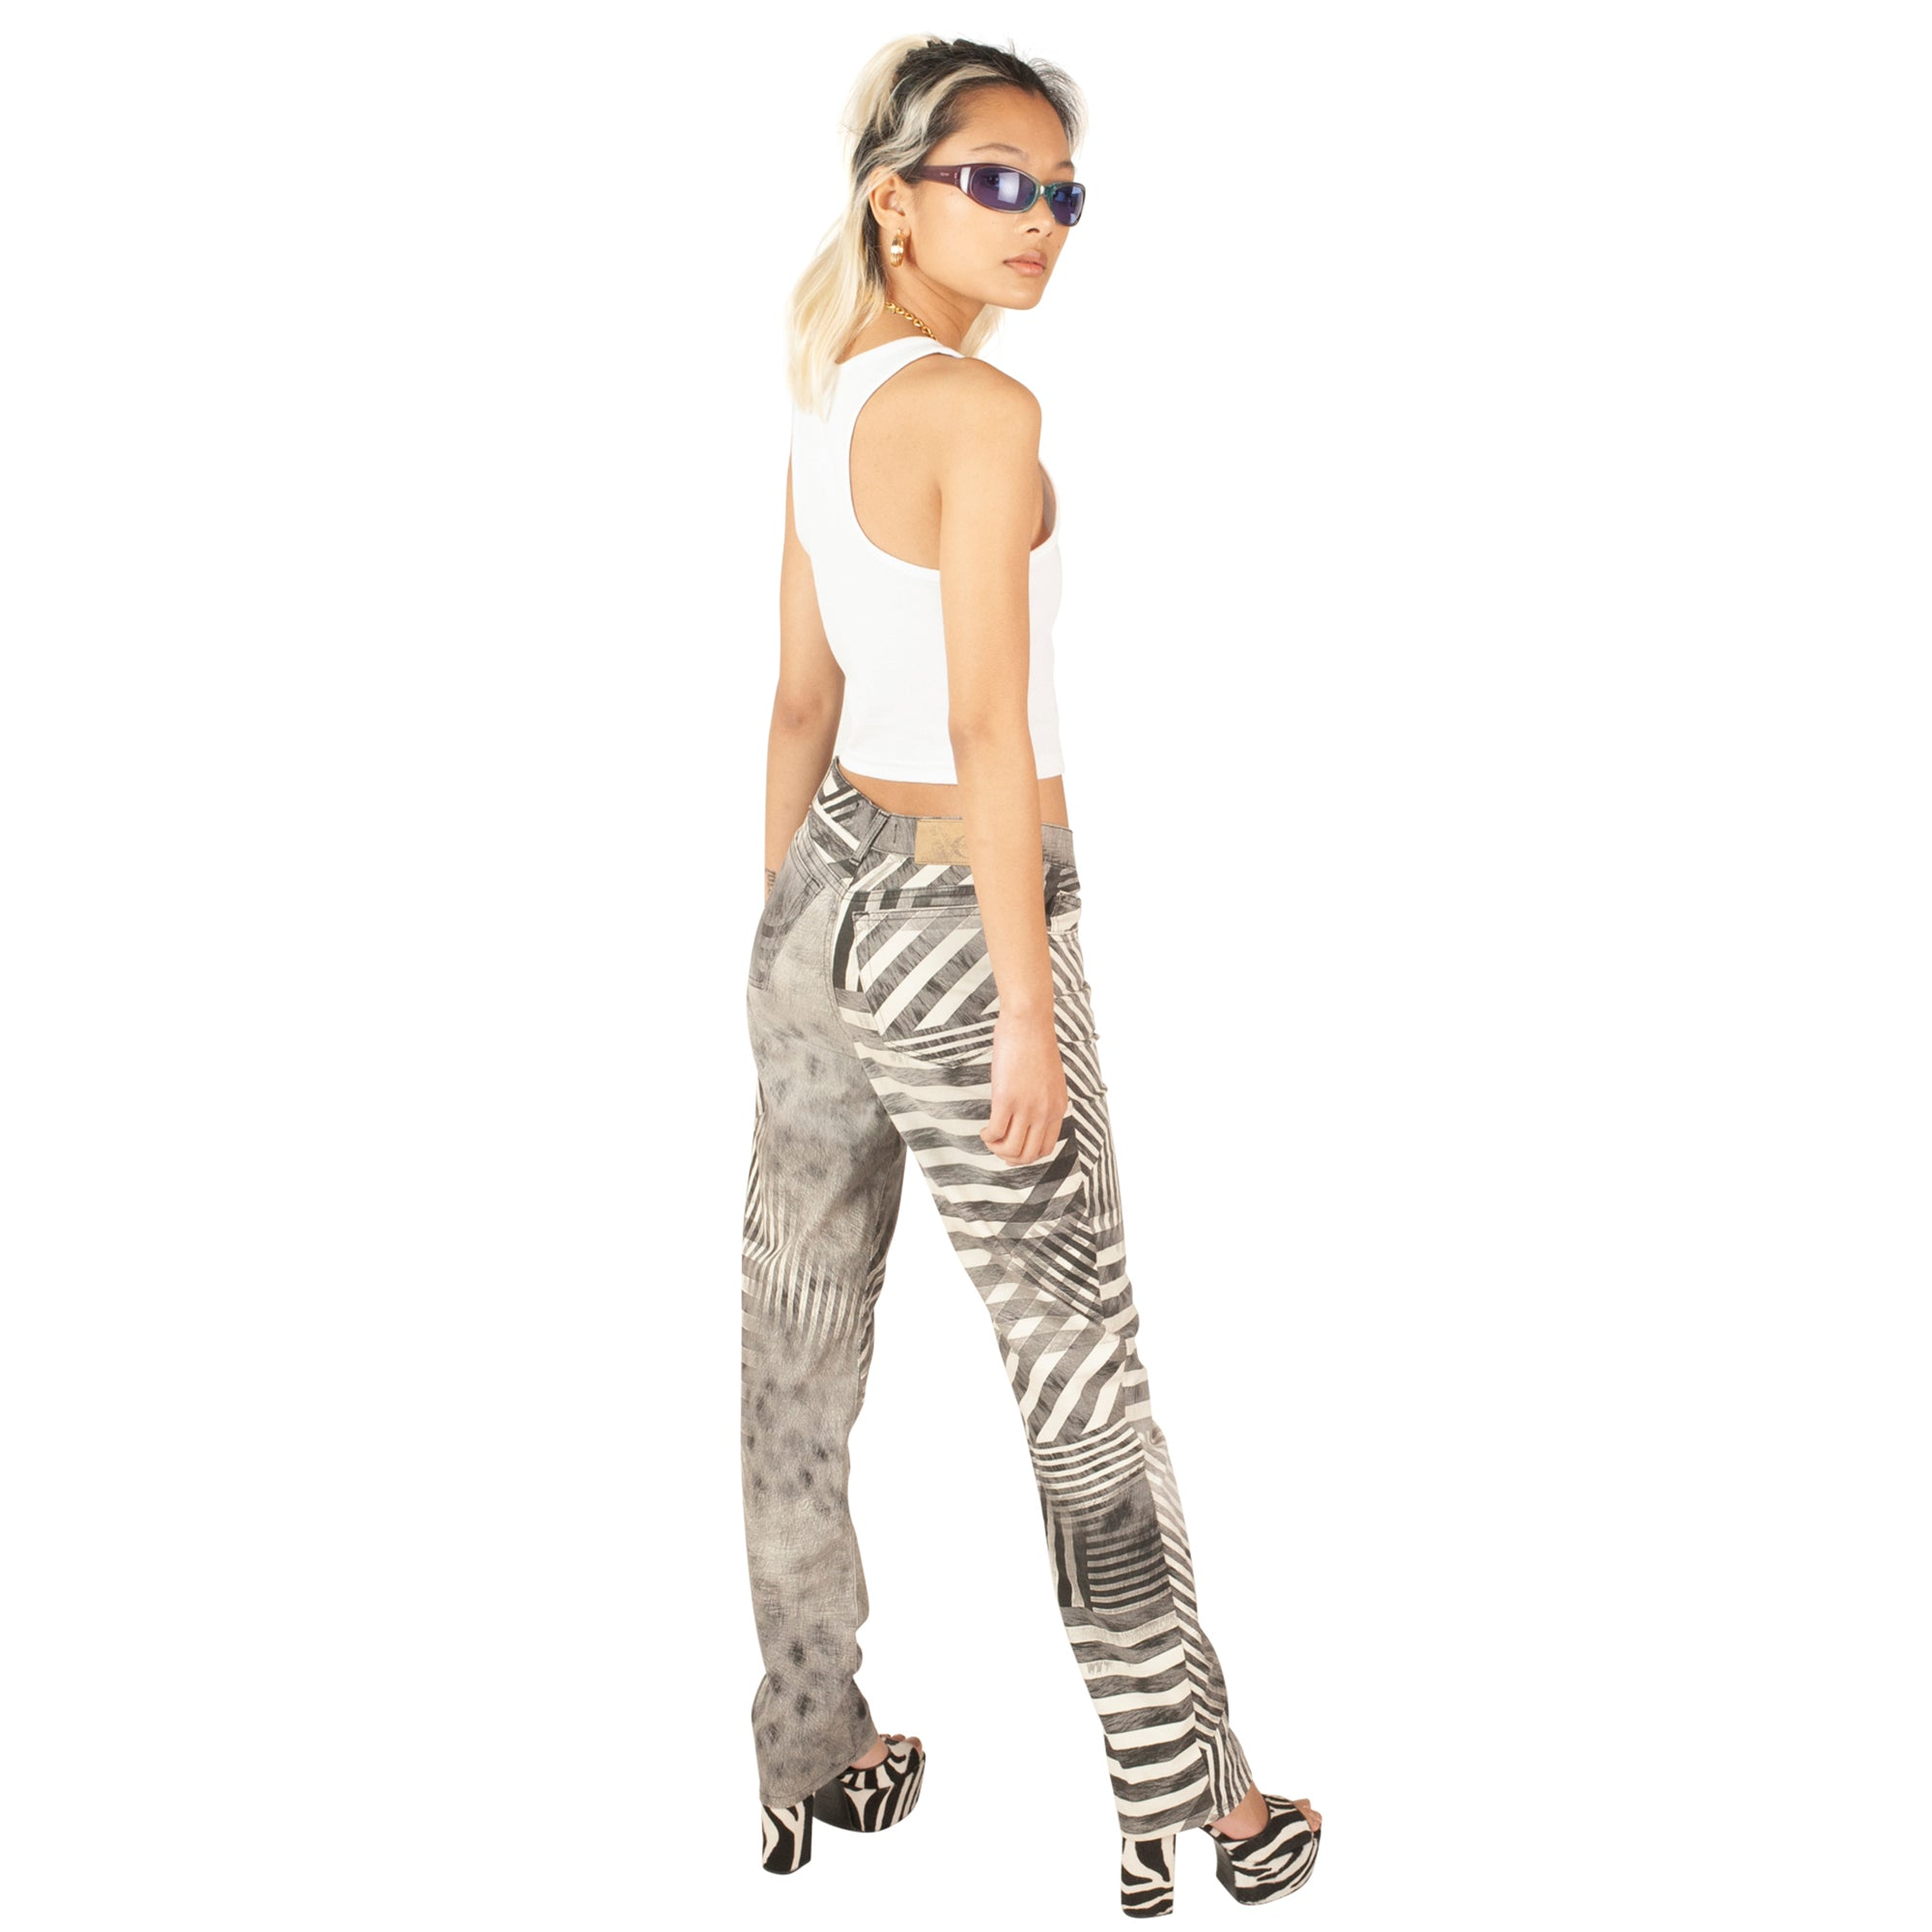 Roberto Cavalli Psychedelic Trousers (Black/White) UK 10